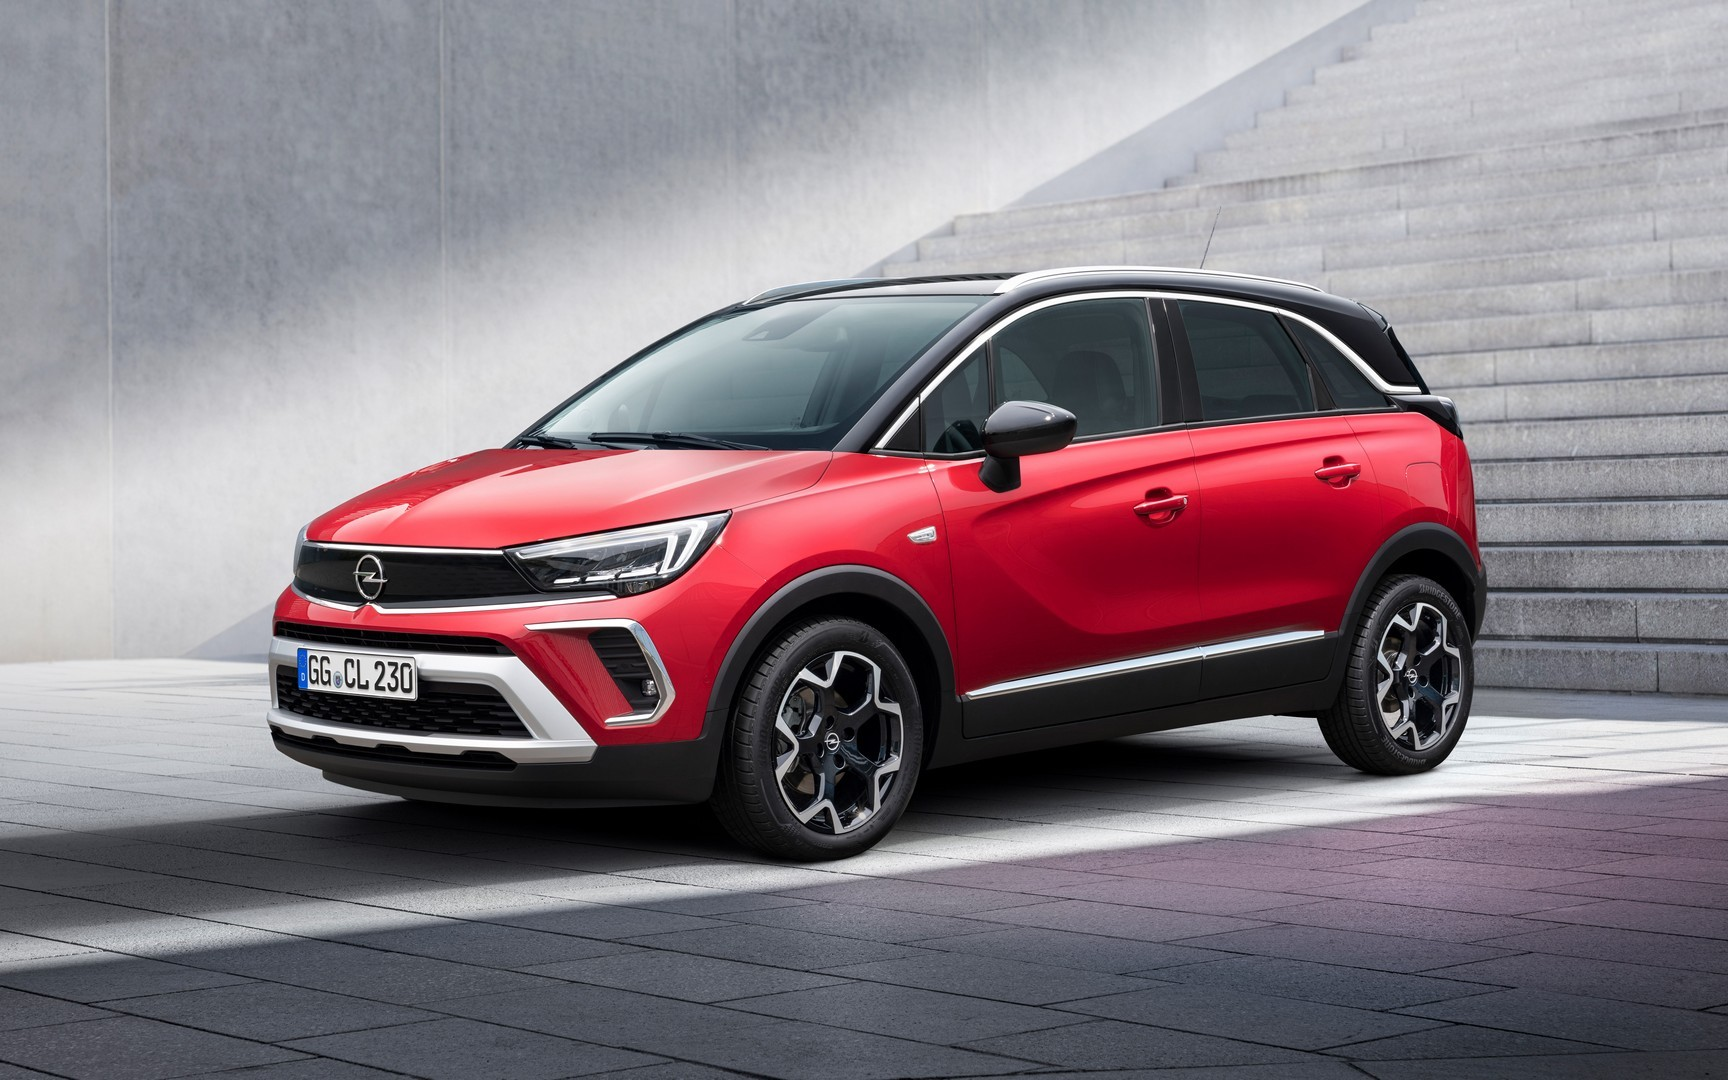 2021 Opel Crossland Looks Quirky With Adapted Mokka Face ...